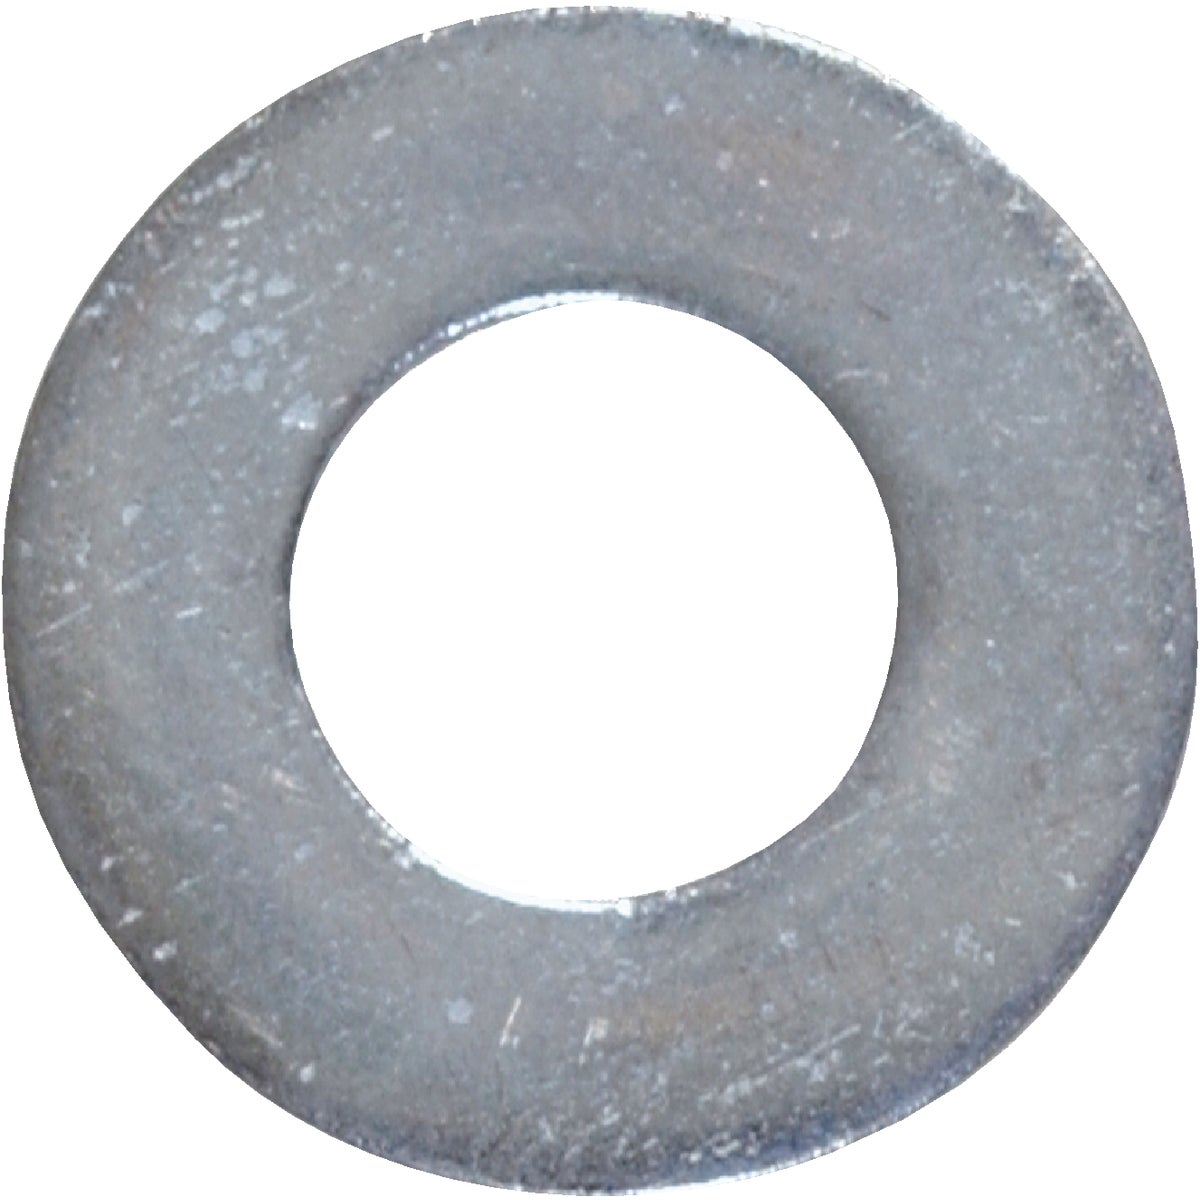 "5LB 1/4"" USS FLT WASHER - 811003 by Hillman Fastener"